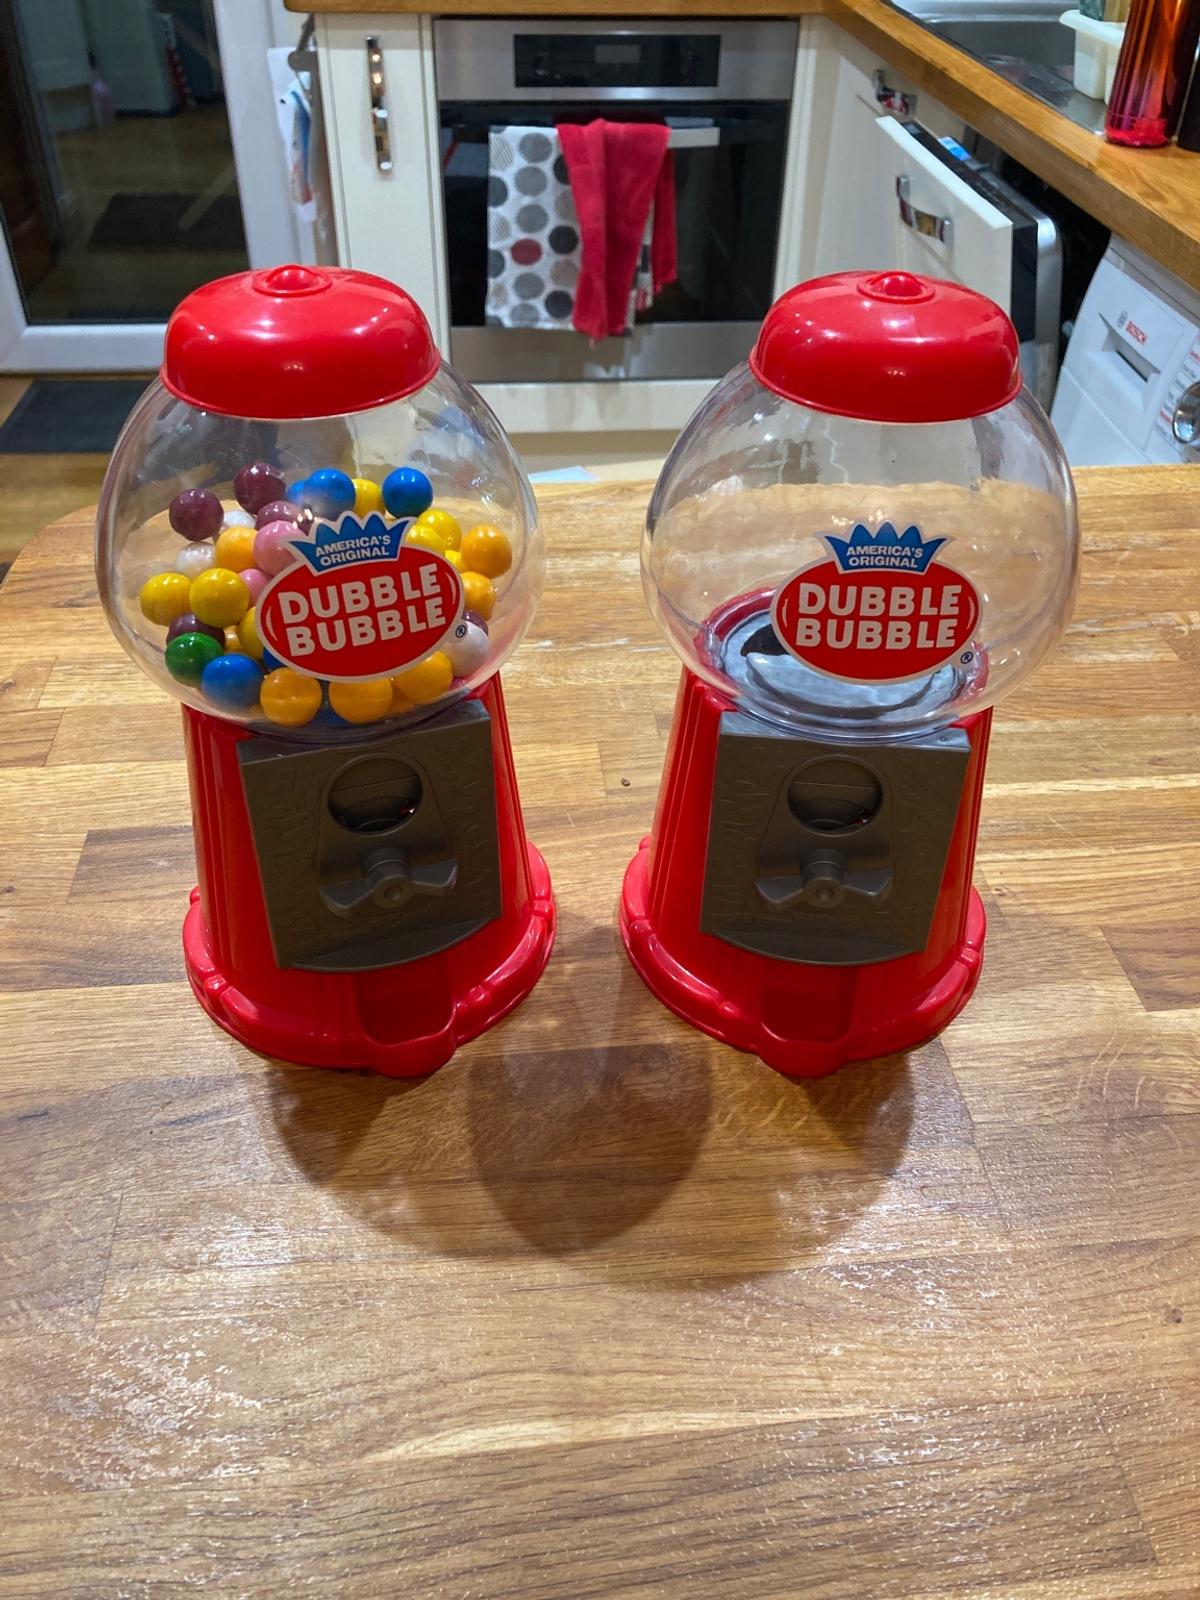 Plastic bubble gum machines in good used condition. Approx 22cm high I have 2 of these for sale for £2.00 each. From smoke and pet free house Cash on collection only